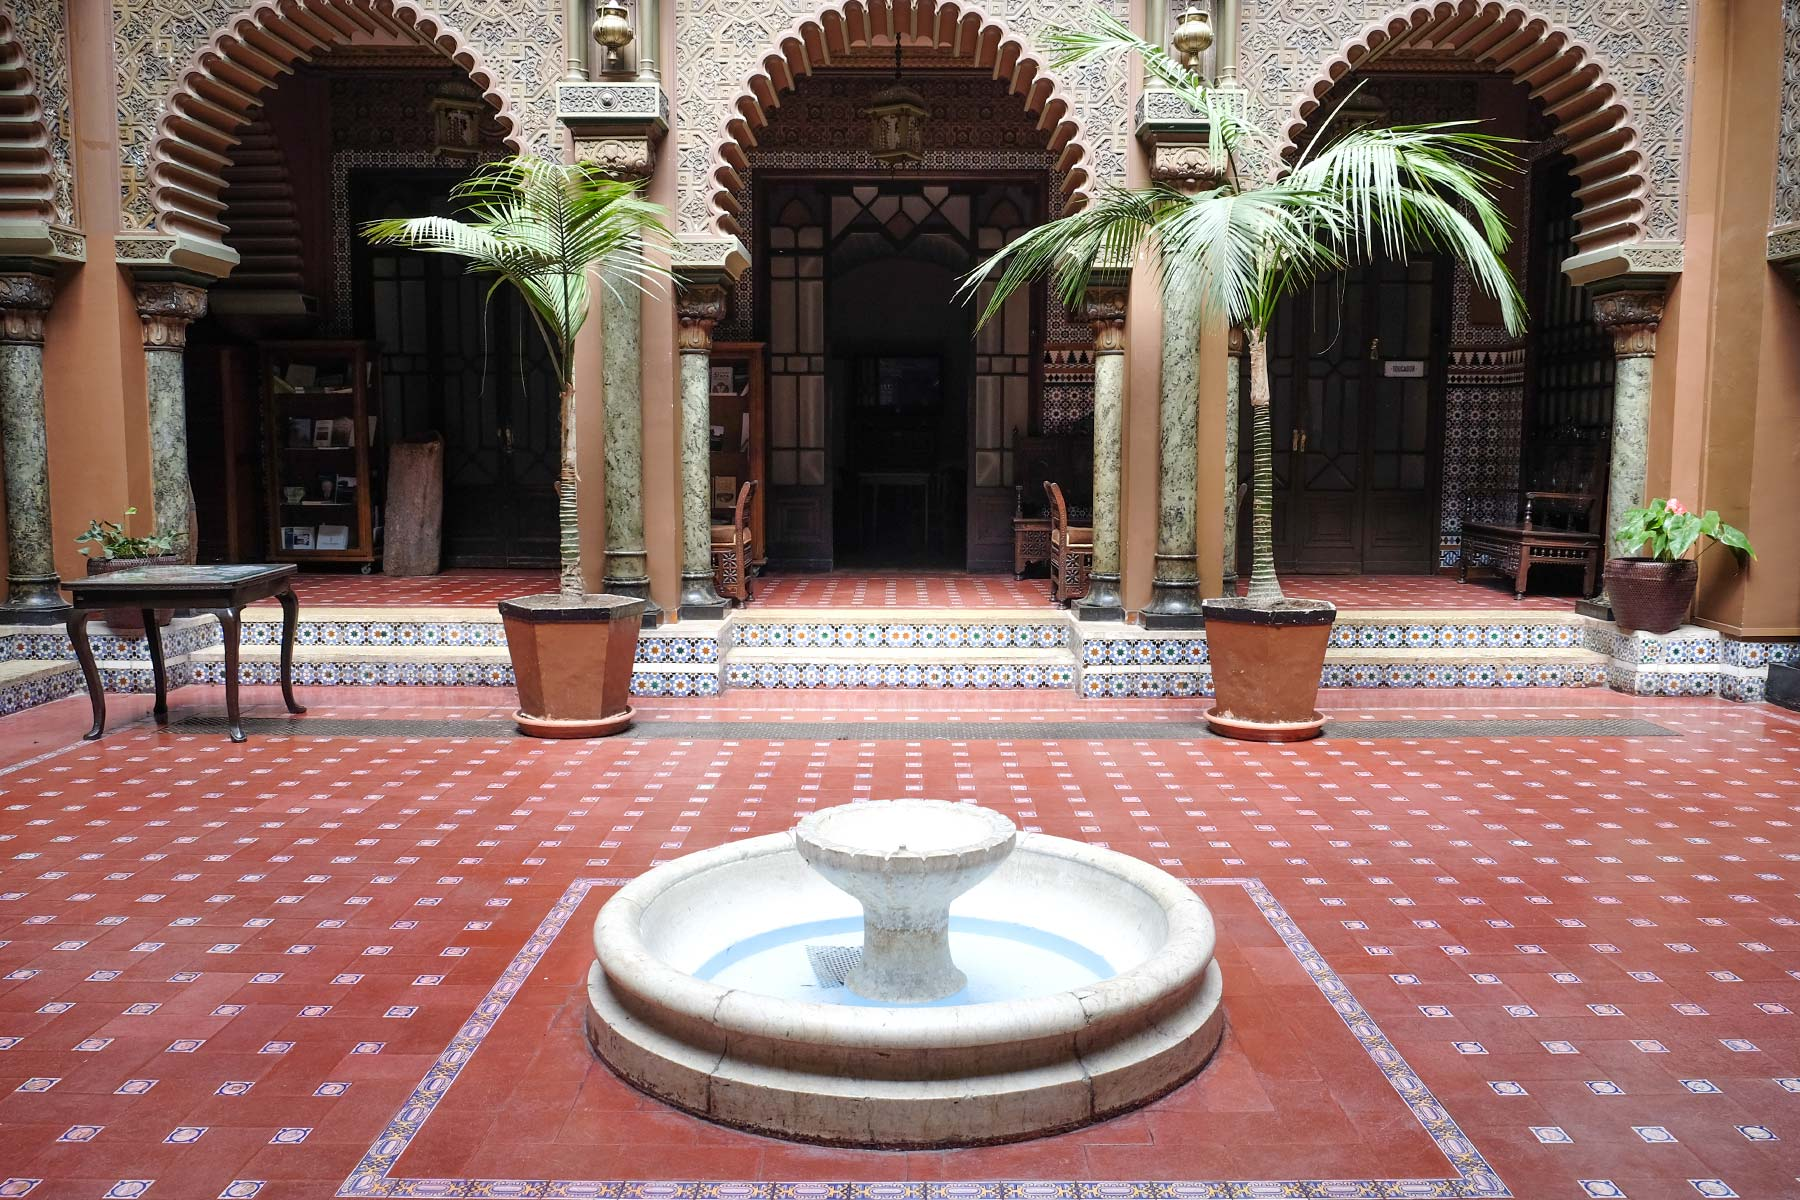 Innenhof des Casa do Alentejo in Lissabon, Portugal